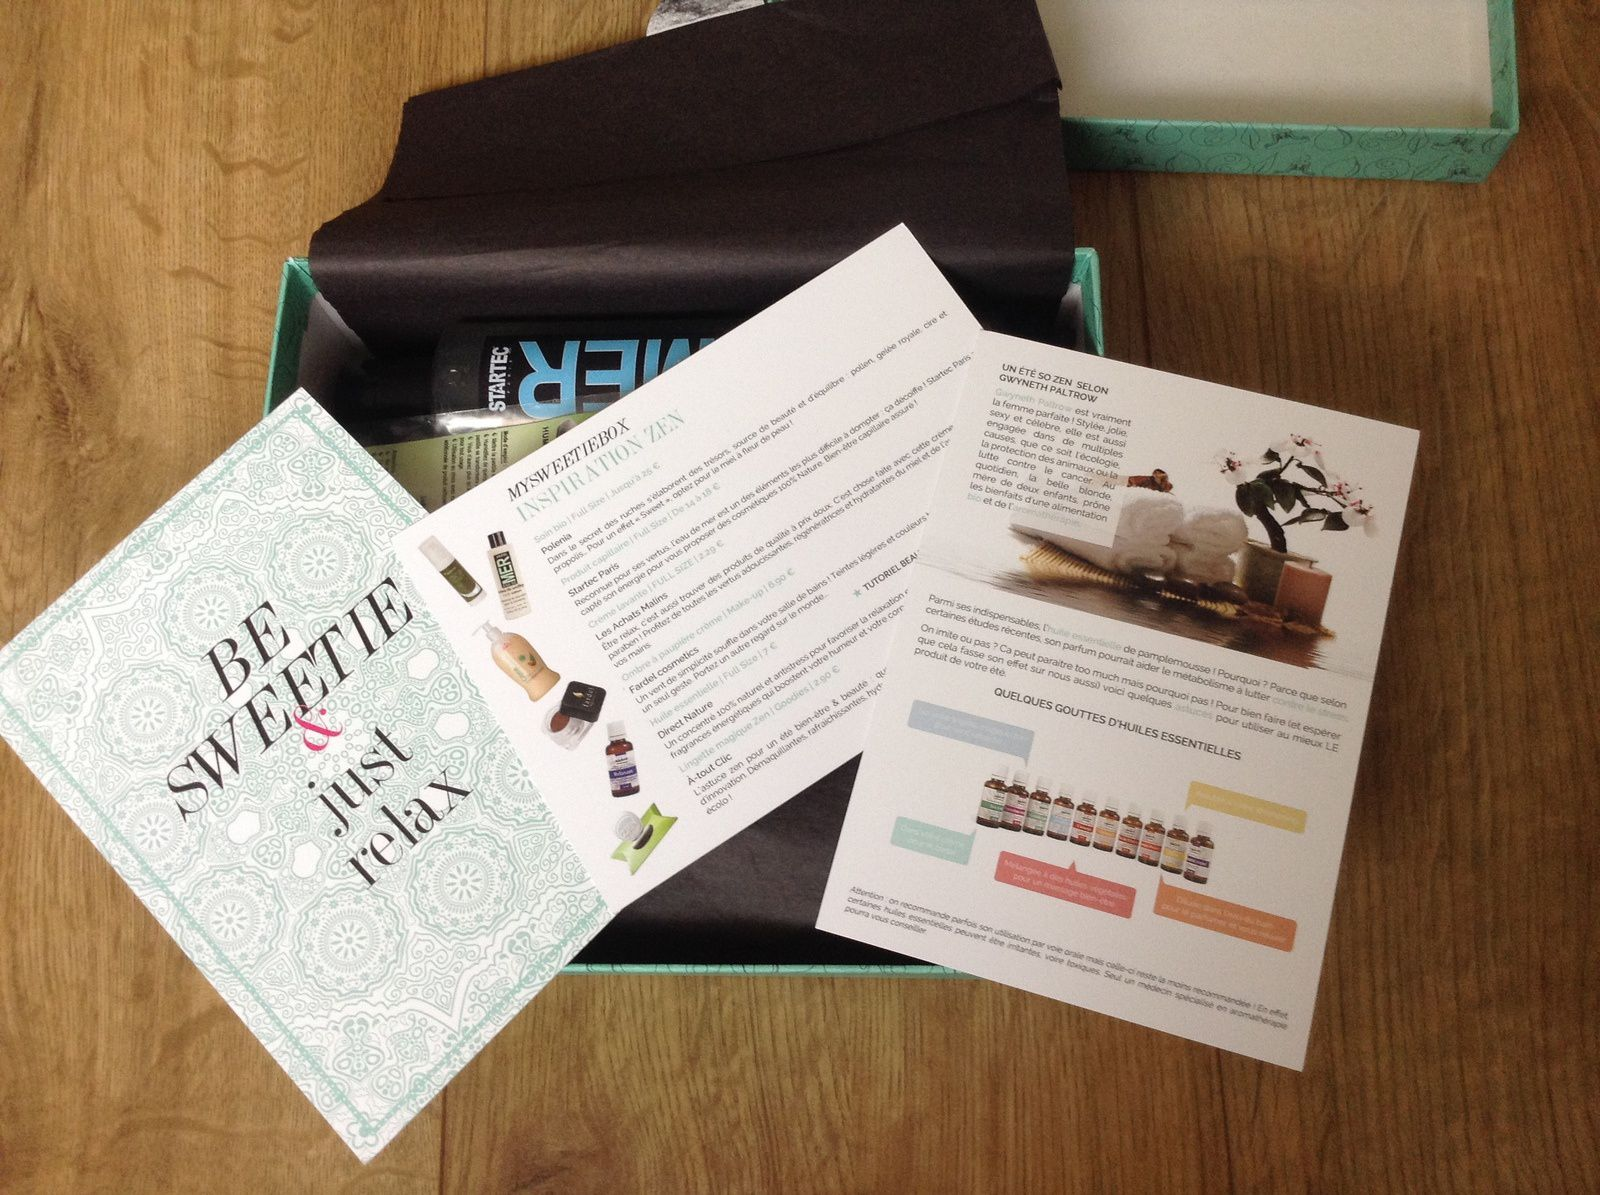 My Sweetie Box: Be Sweetie and just relax